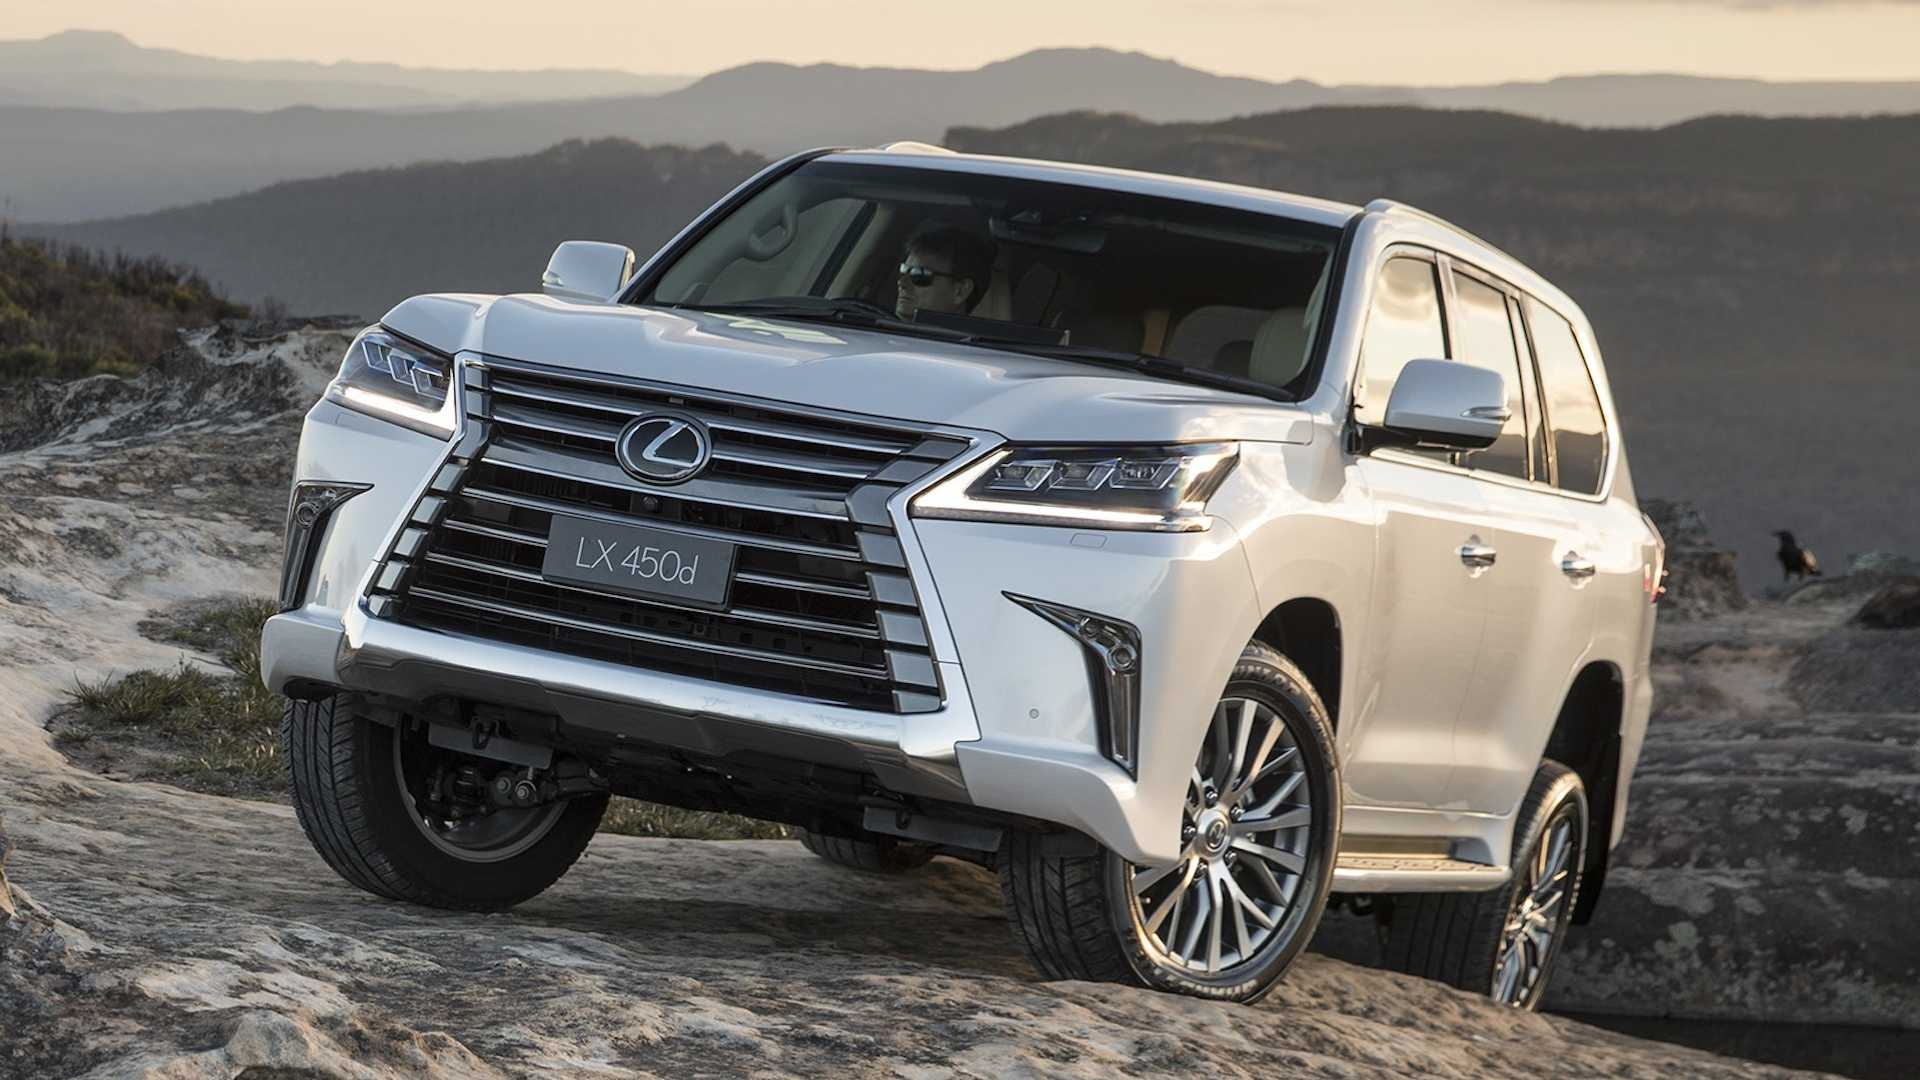 Unofficial reports are coming in that a body-on-frame SUV larger than the current LX model is in the works at Lexus. No official comment has been made yet.